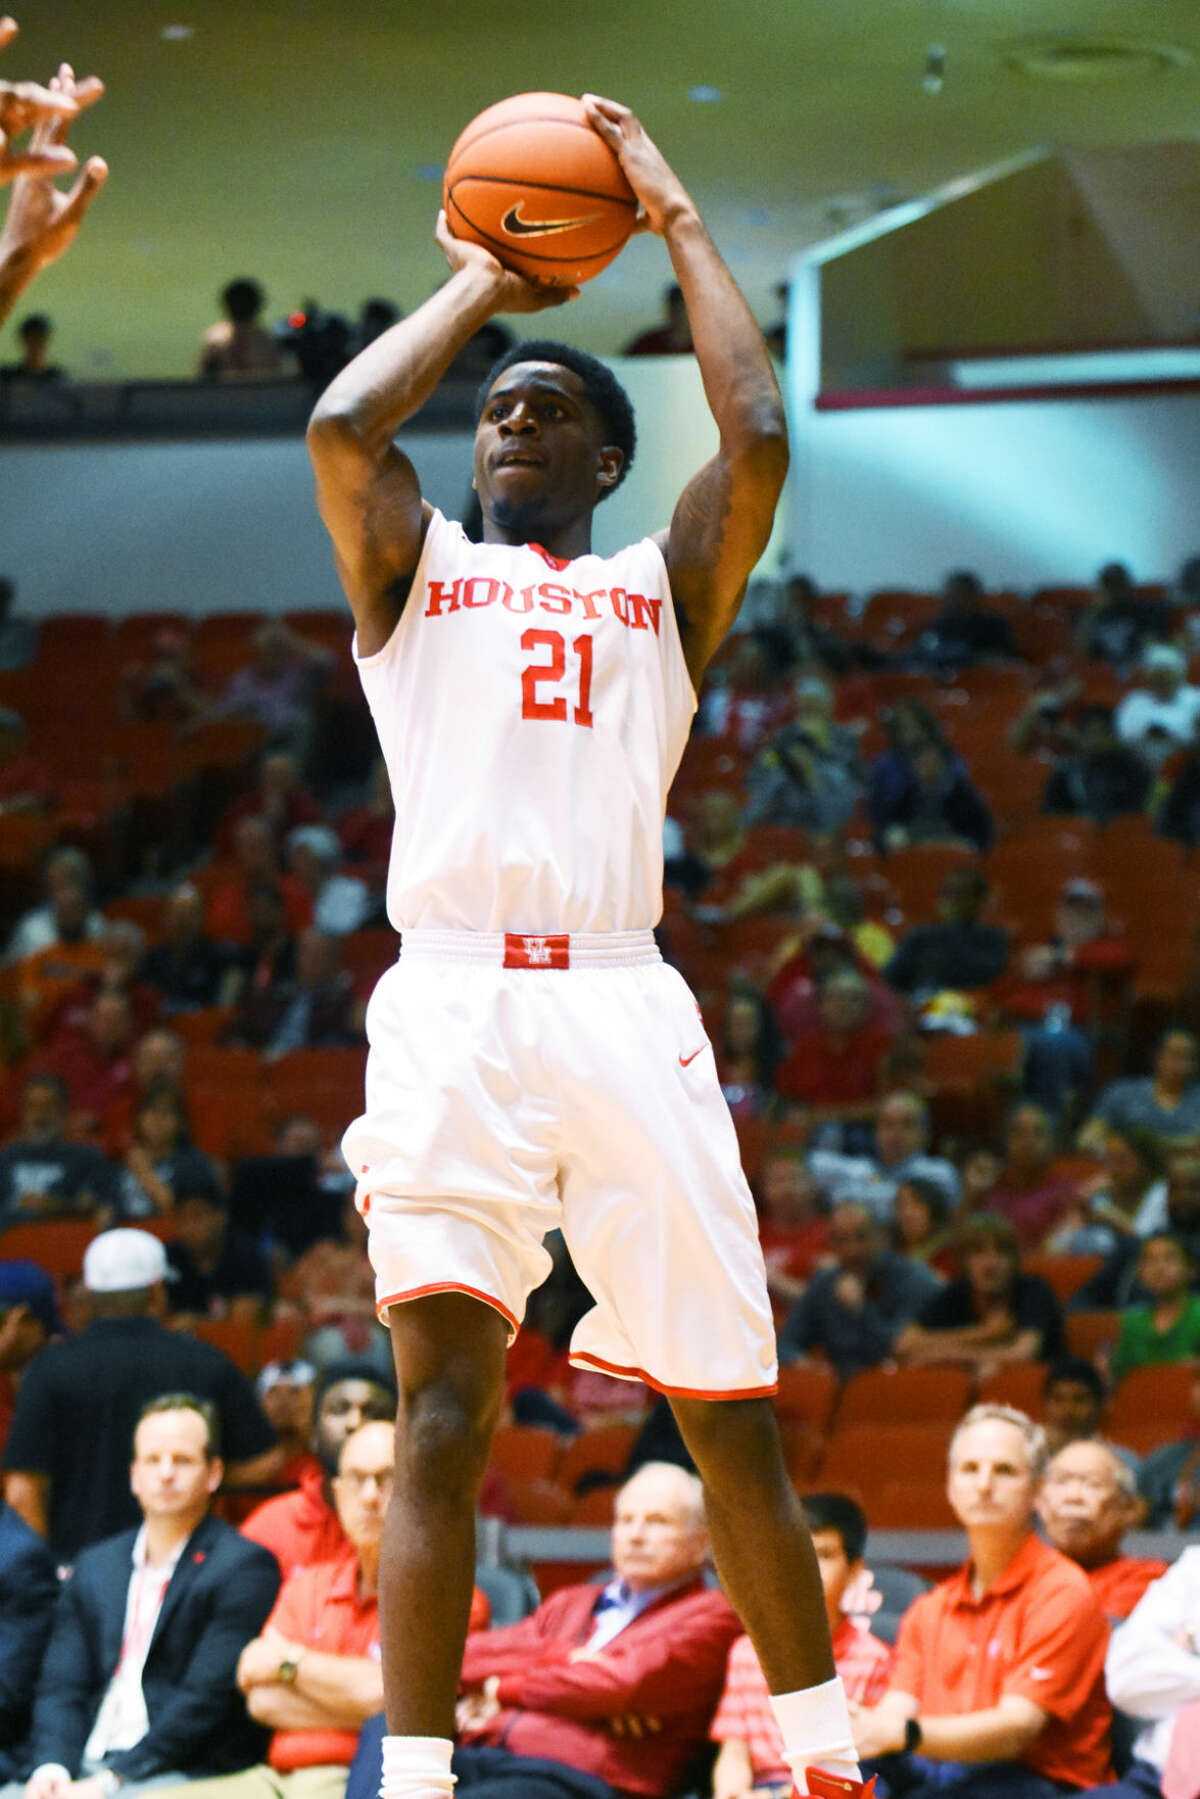 University of Houston junior guard Damyean Dotson rises for a three-point shot against Cincinnati Thursday, March 3, at Hofheinz Pavilion. Dotson scored 13 points and grabbed a team-high seven rebounds in the 69-56 victory.